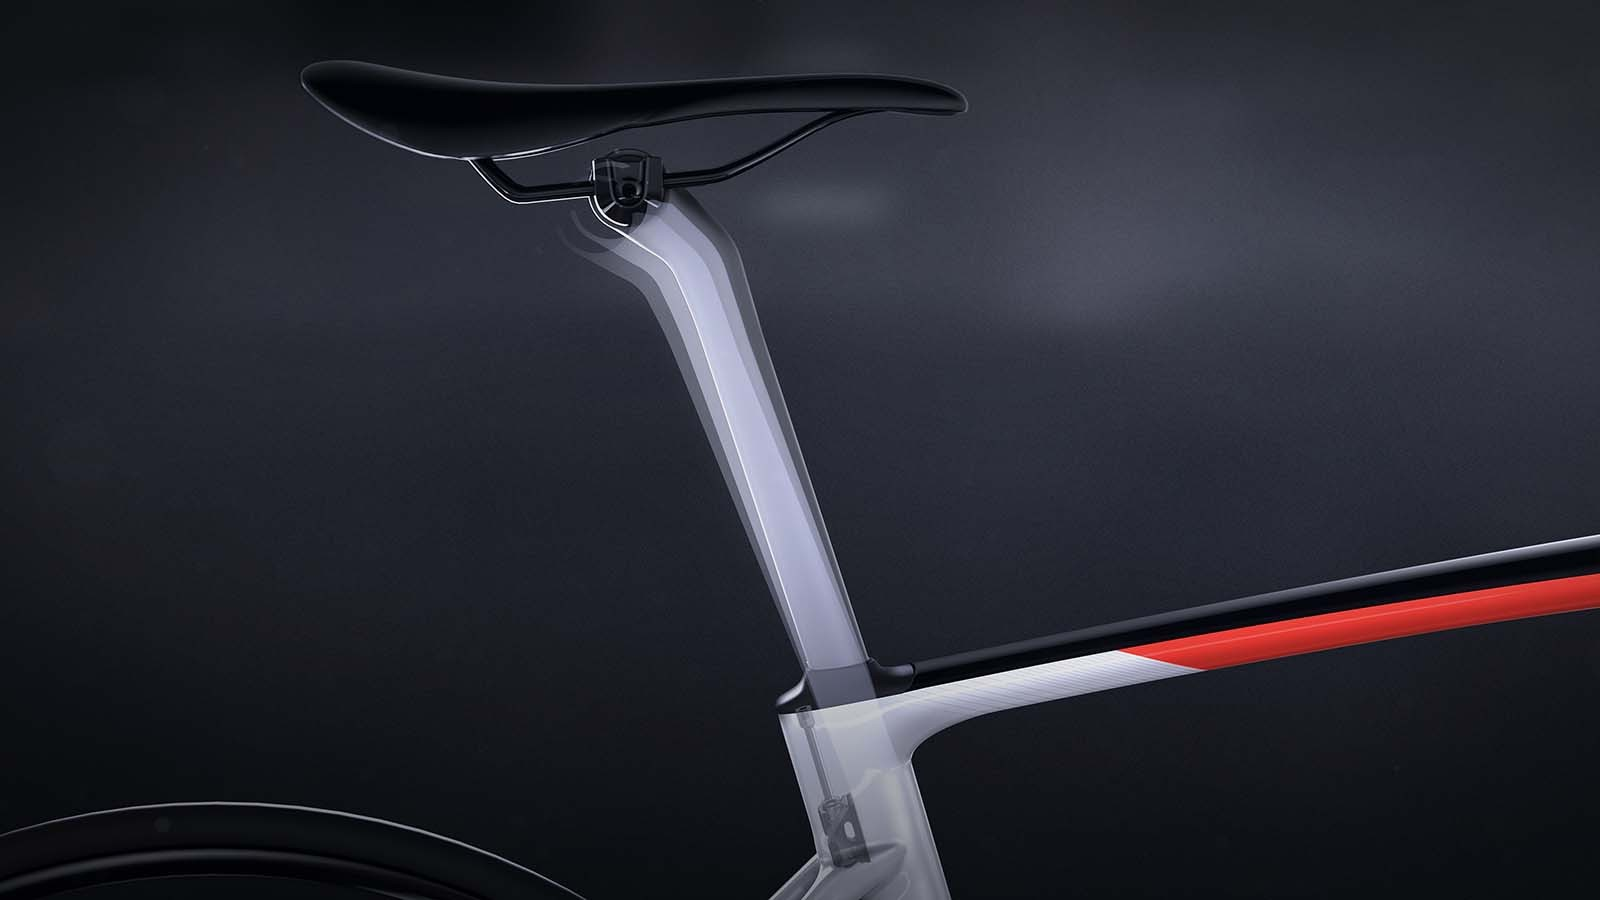 The new Pave seatpost offers plenty of fore-and-aft compliance